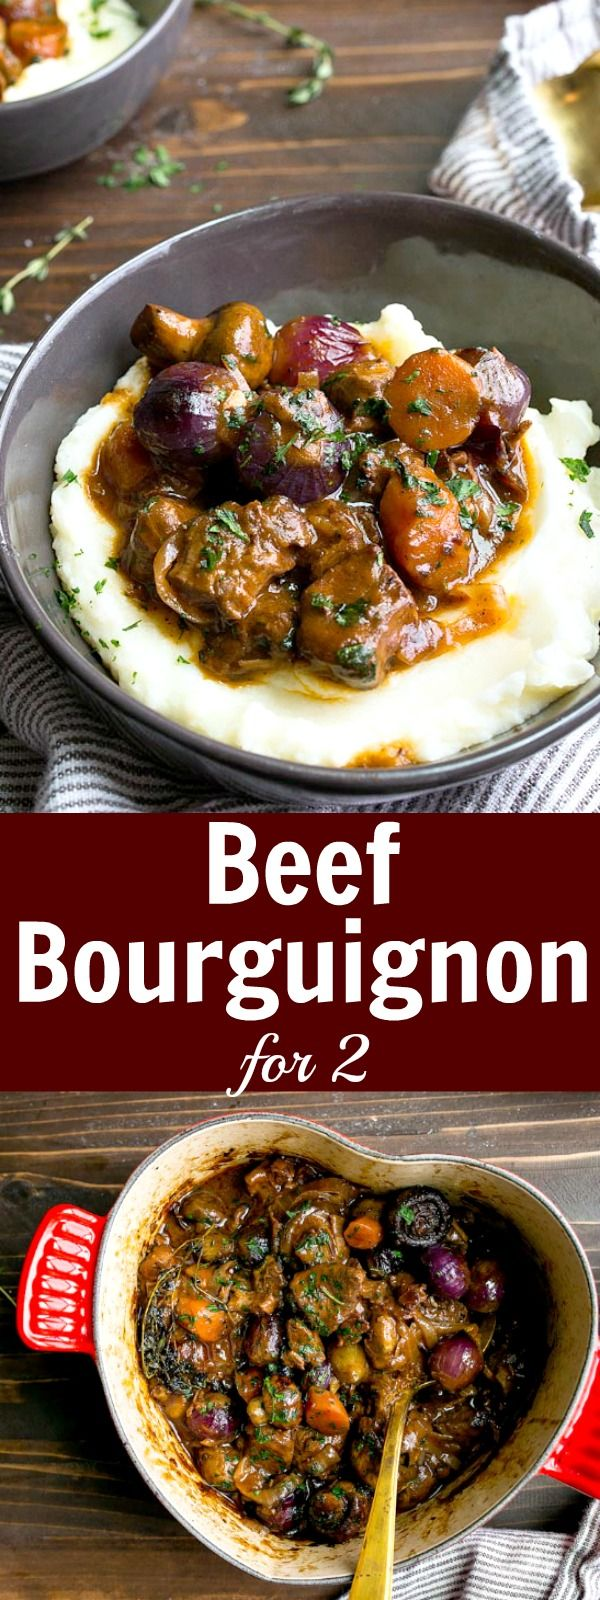 Classic French Beef Bourguignon For Two Classic Beef Burgundy Stew Made With Beef Red Wine Whole Beef Bourguignon Burgundy Beef Stew Beef Bourguignon Recipe